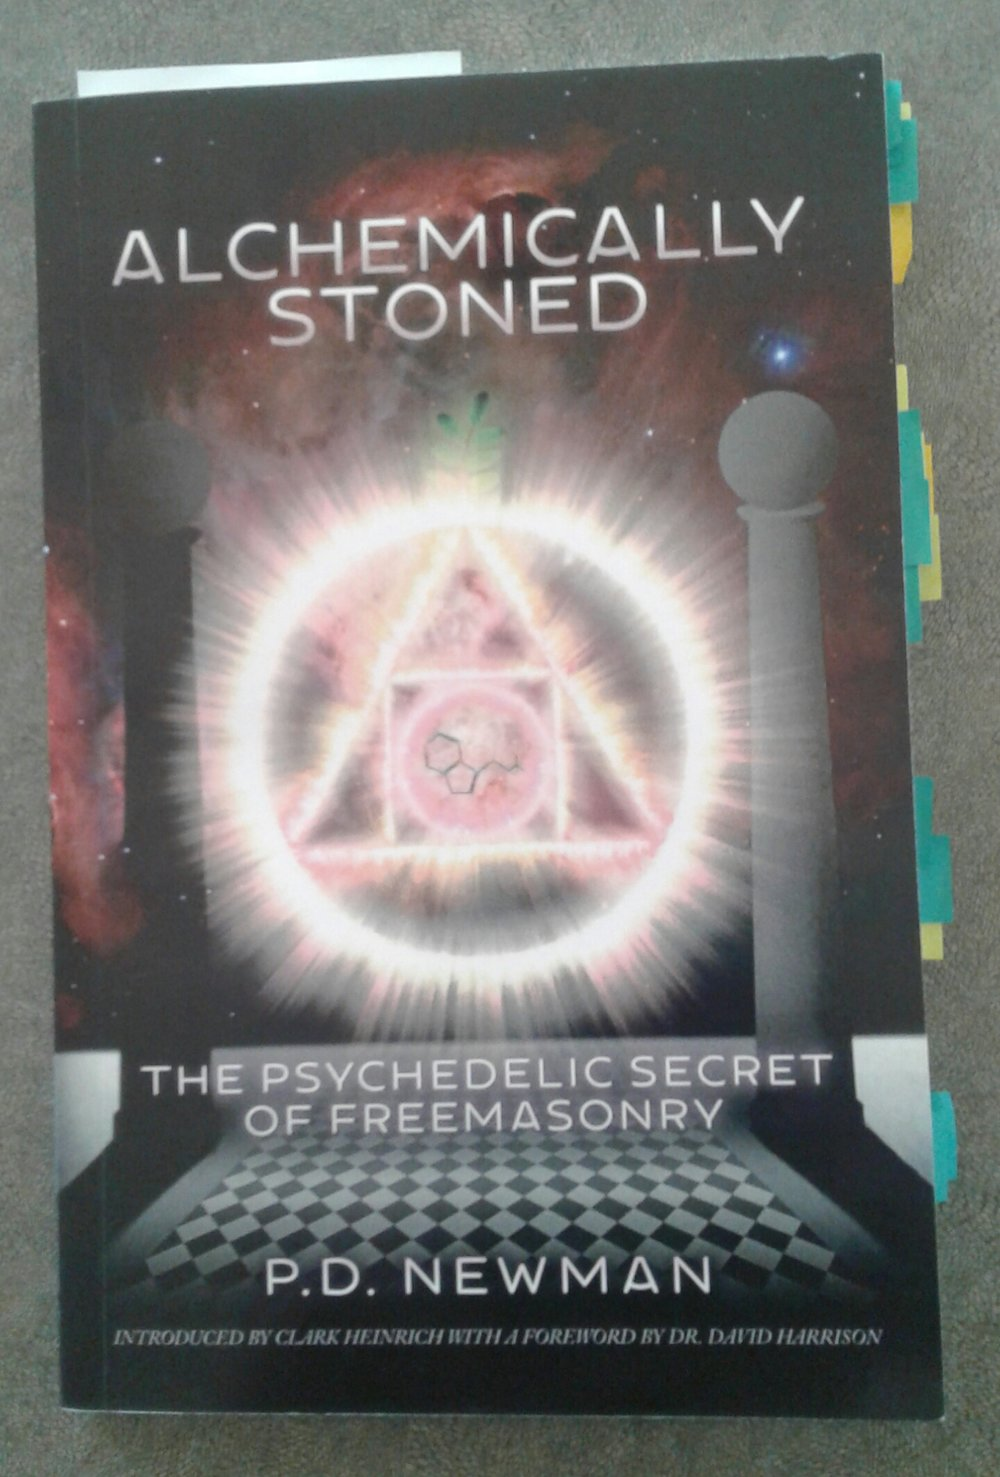 Alchemically Stoned